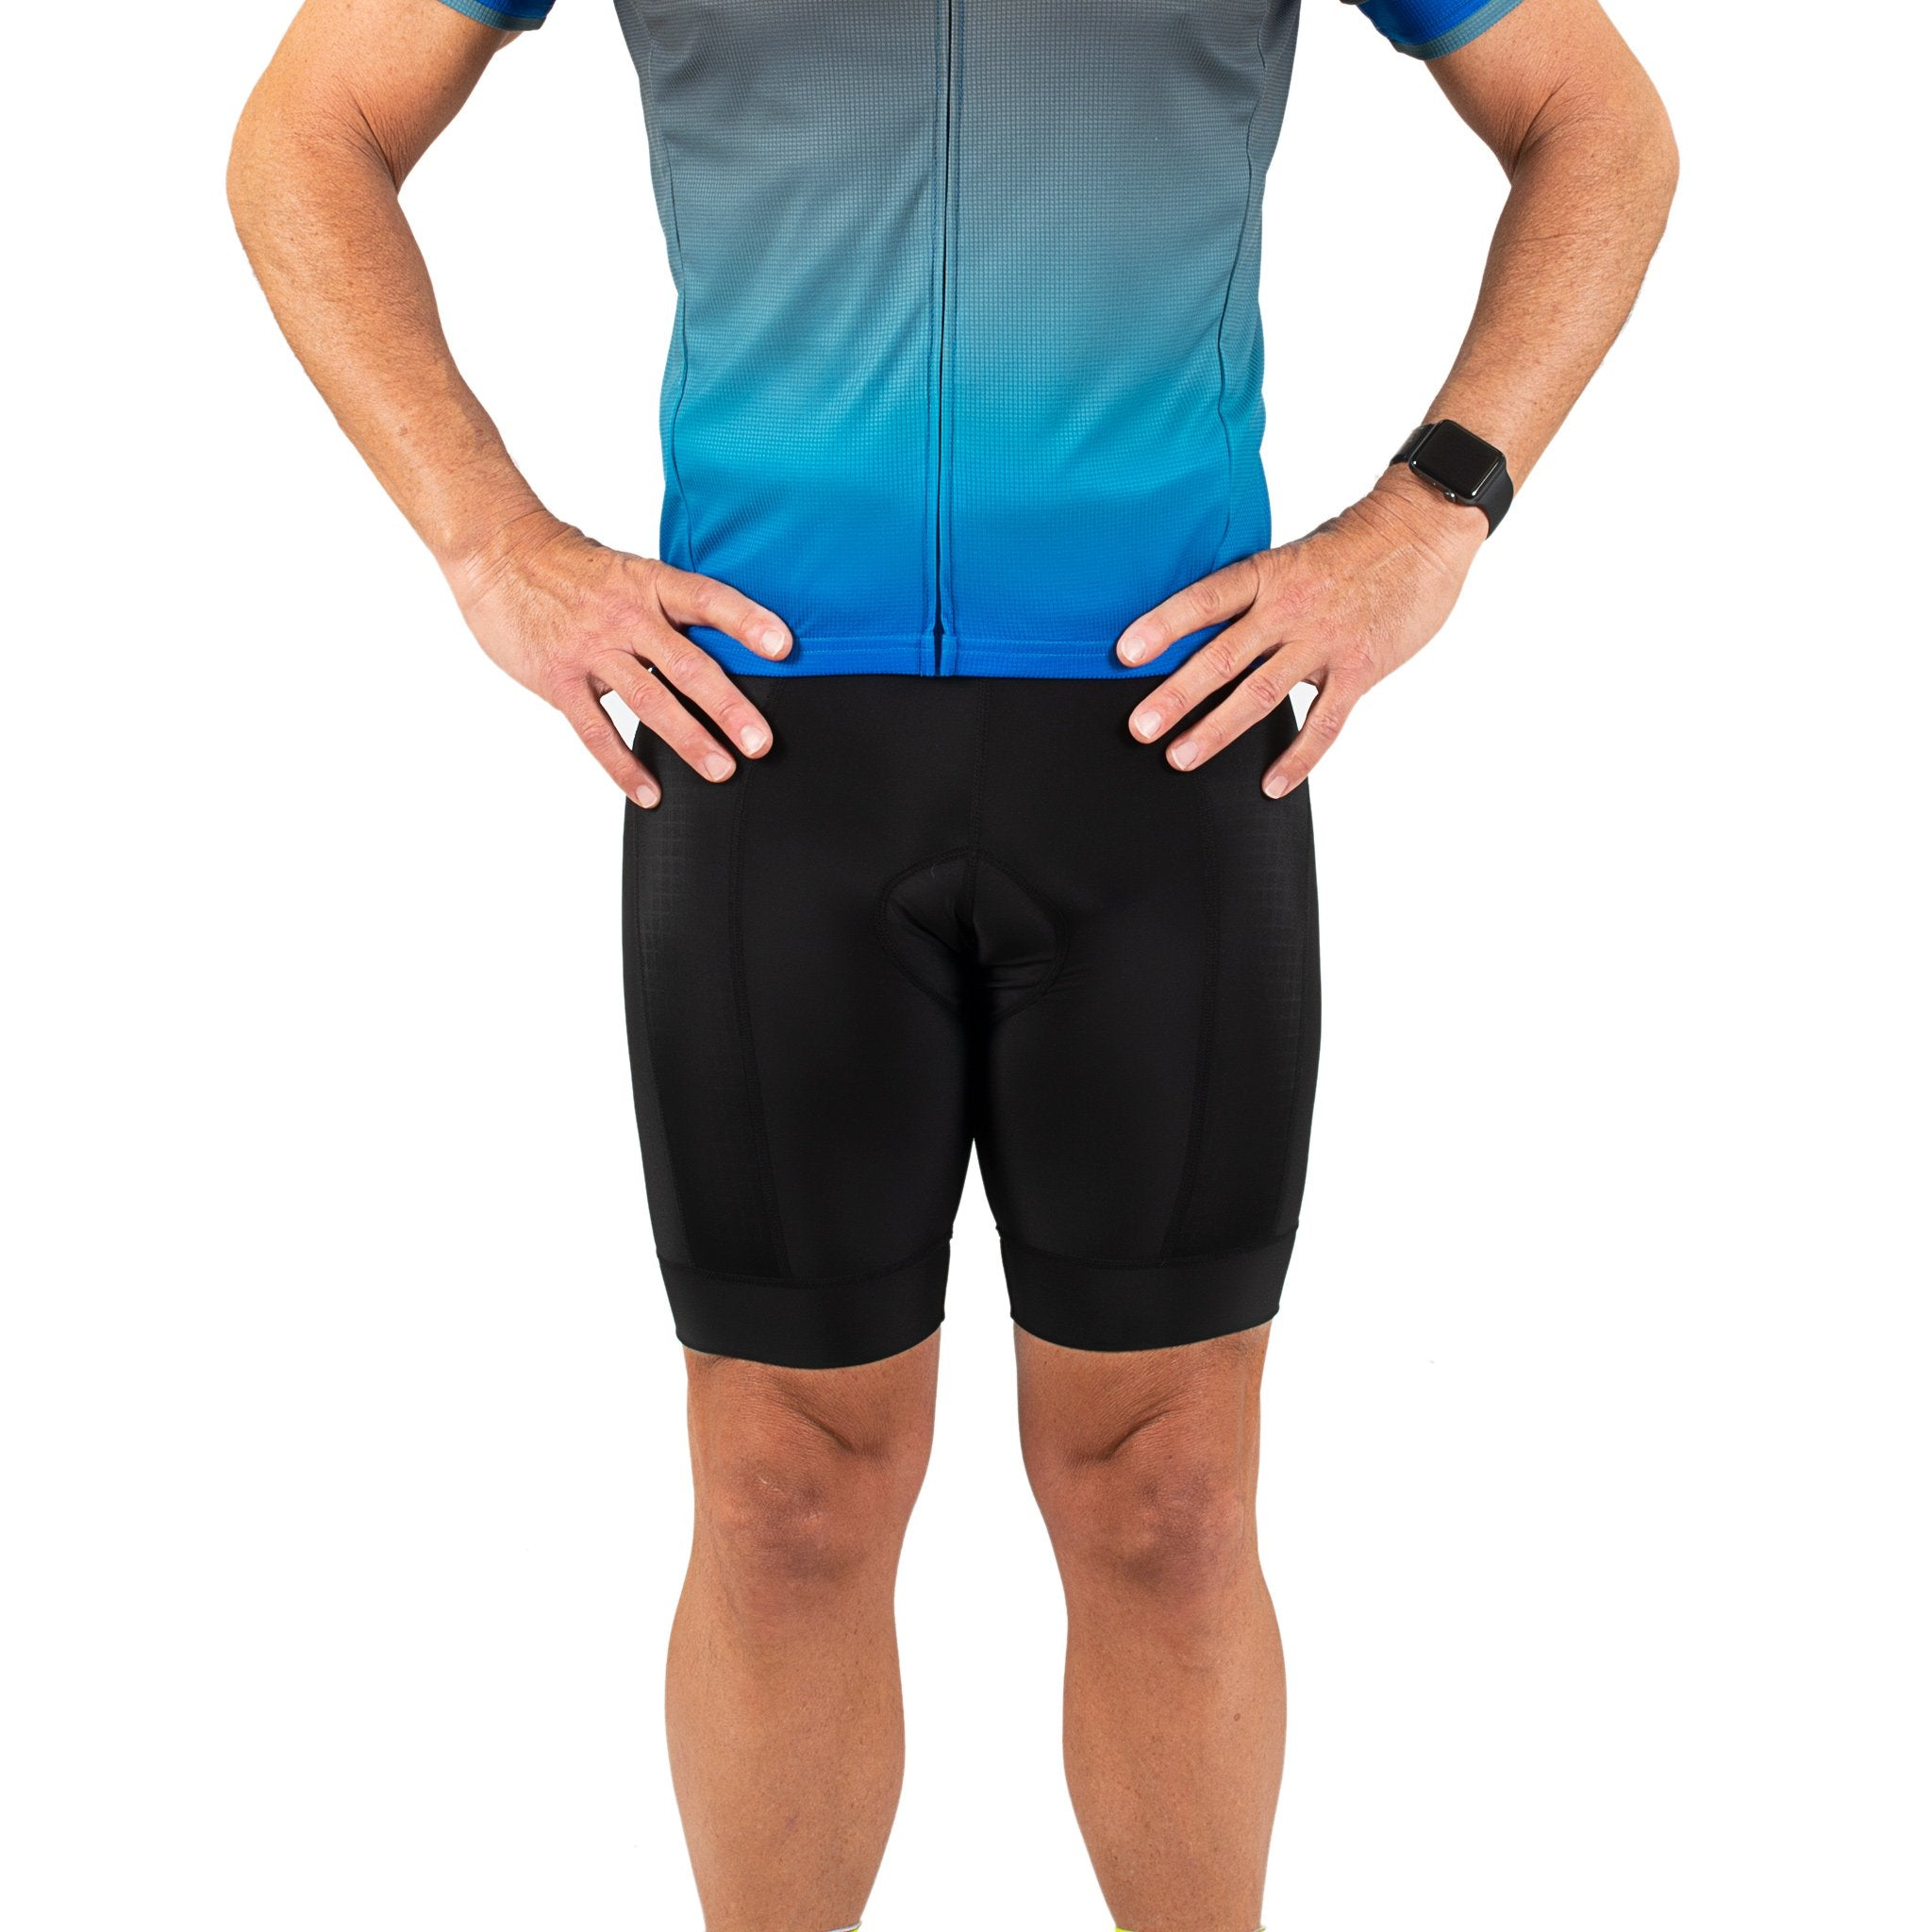 33b1f2859b Canari Cycling Clothing - Canari